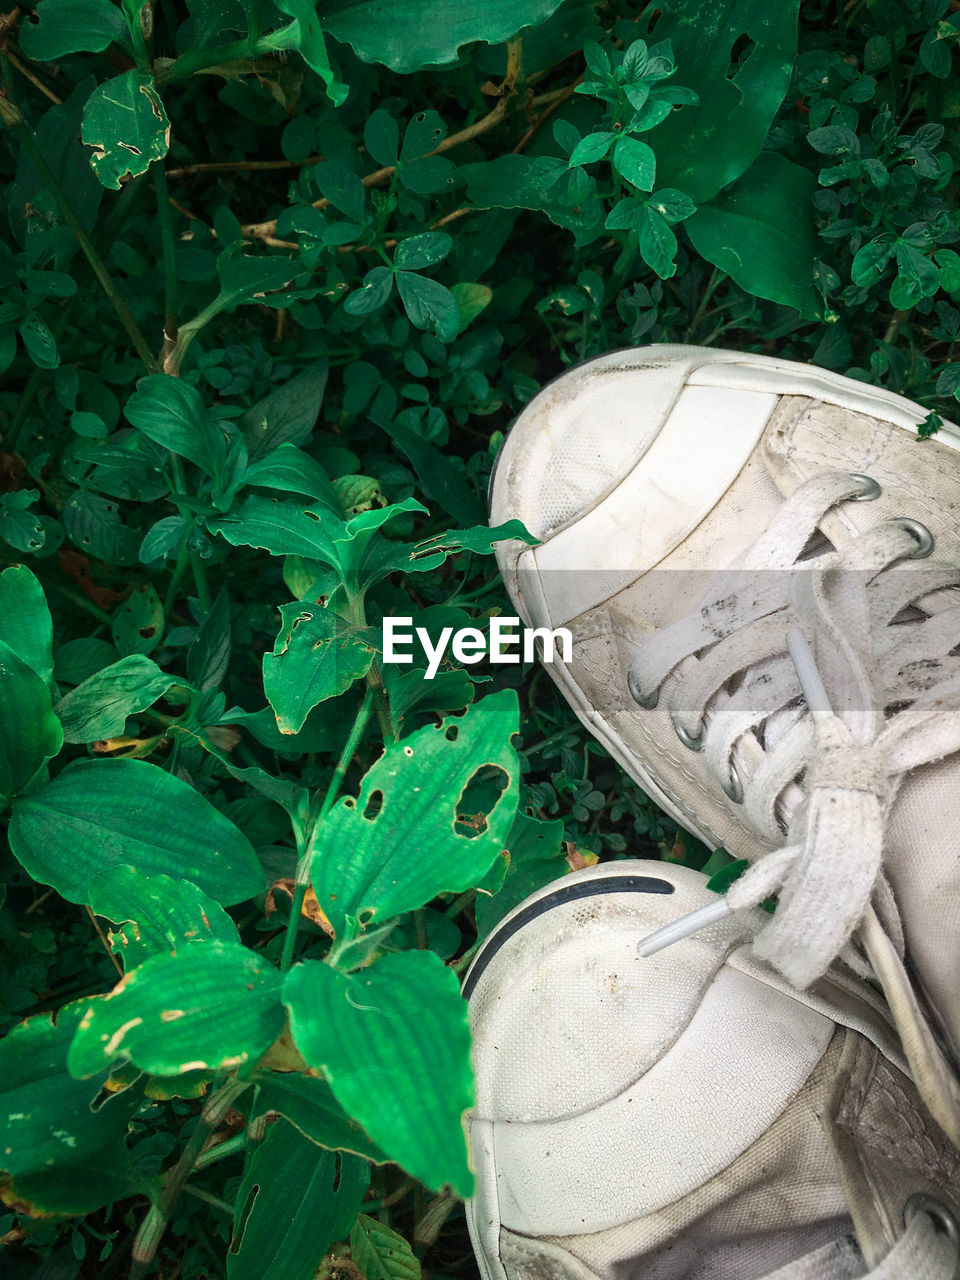 leaf, plant, statue, sculpture, outdoors, growth, no people, high angle view, day, green color, shoe, nature, close-up